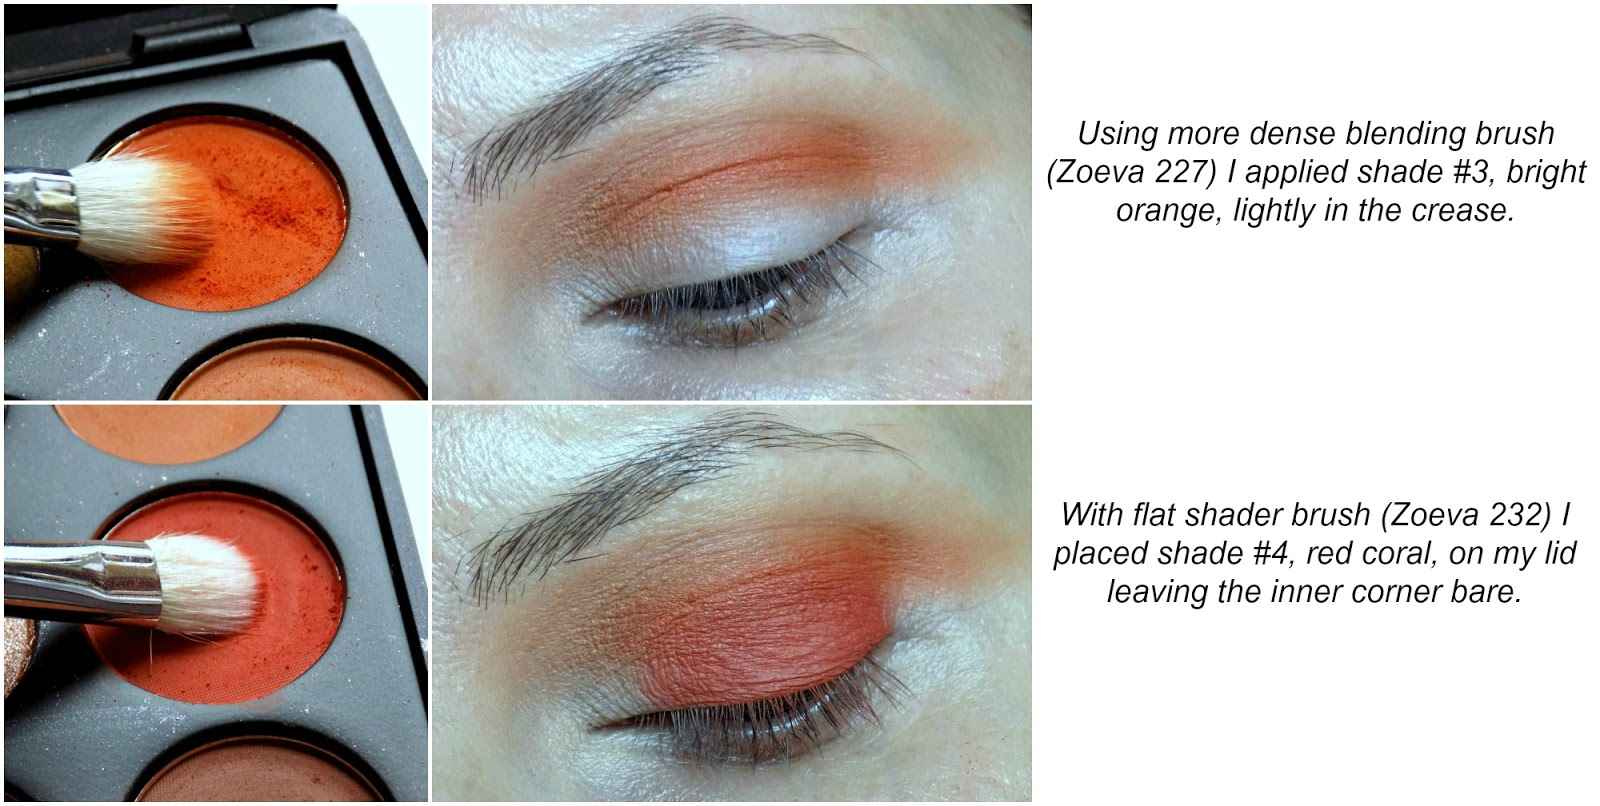 peach-y coral eye look tutorial, feat. Morphe Brushes 35O palette